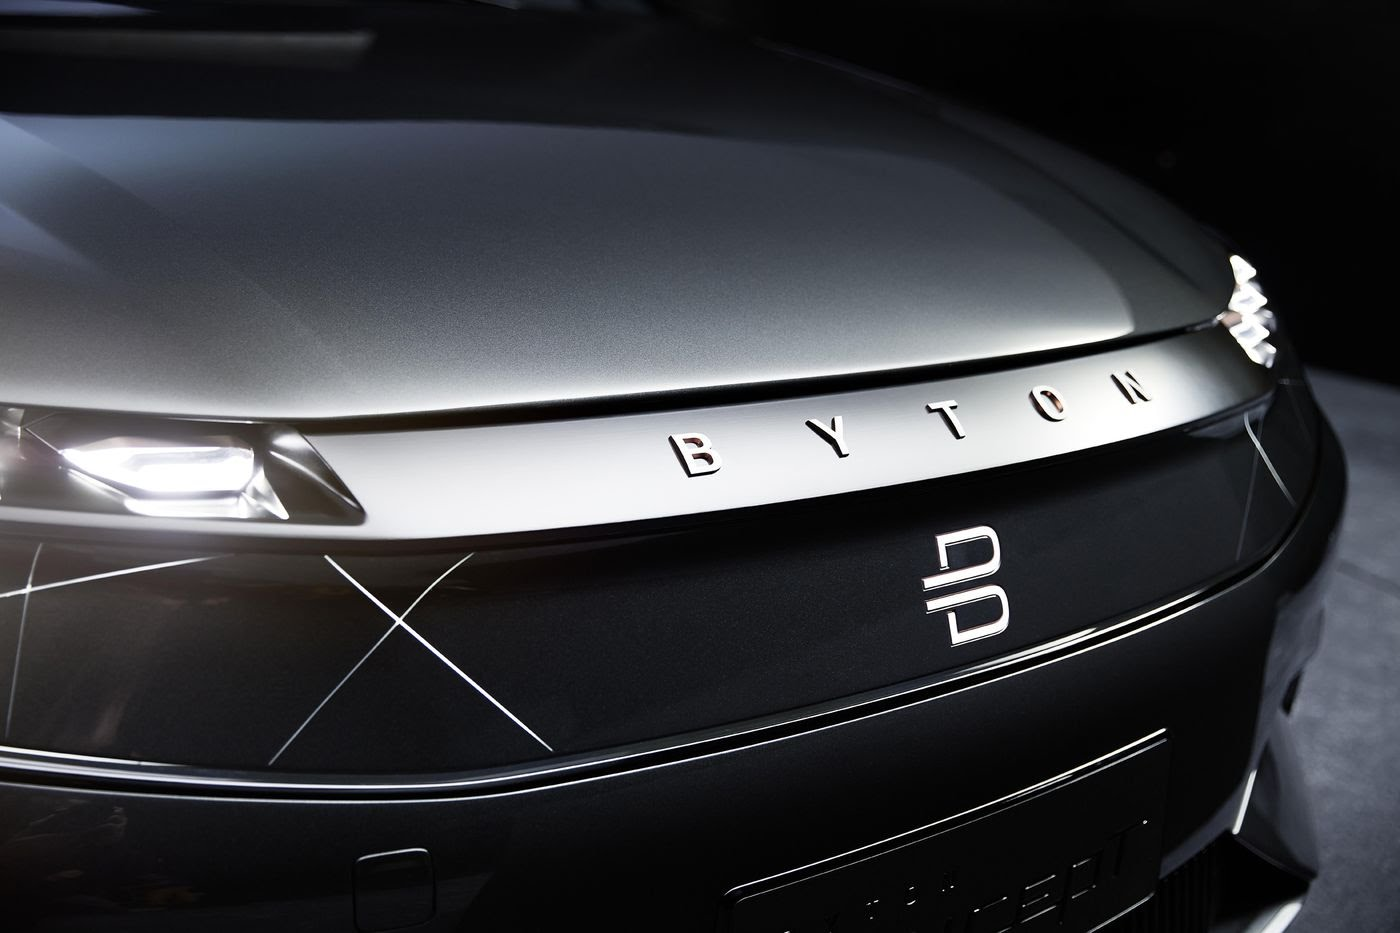 Chinese automaker Byton unveils classy electric vehicle